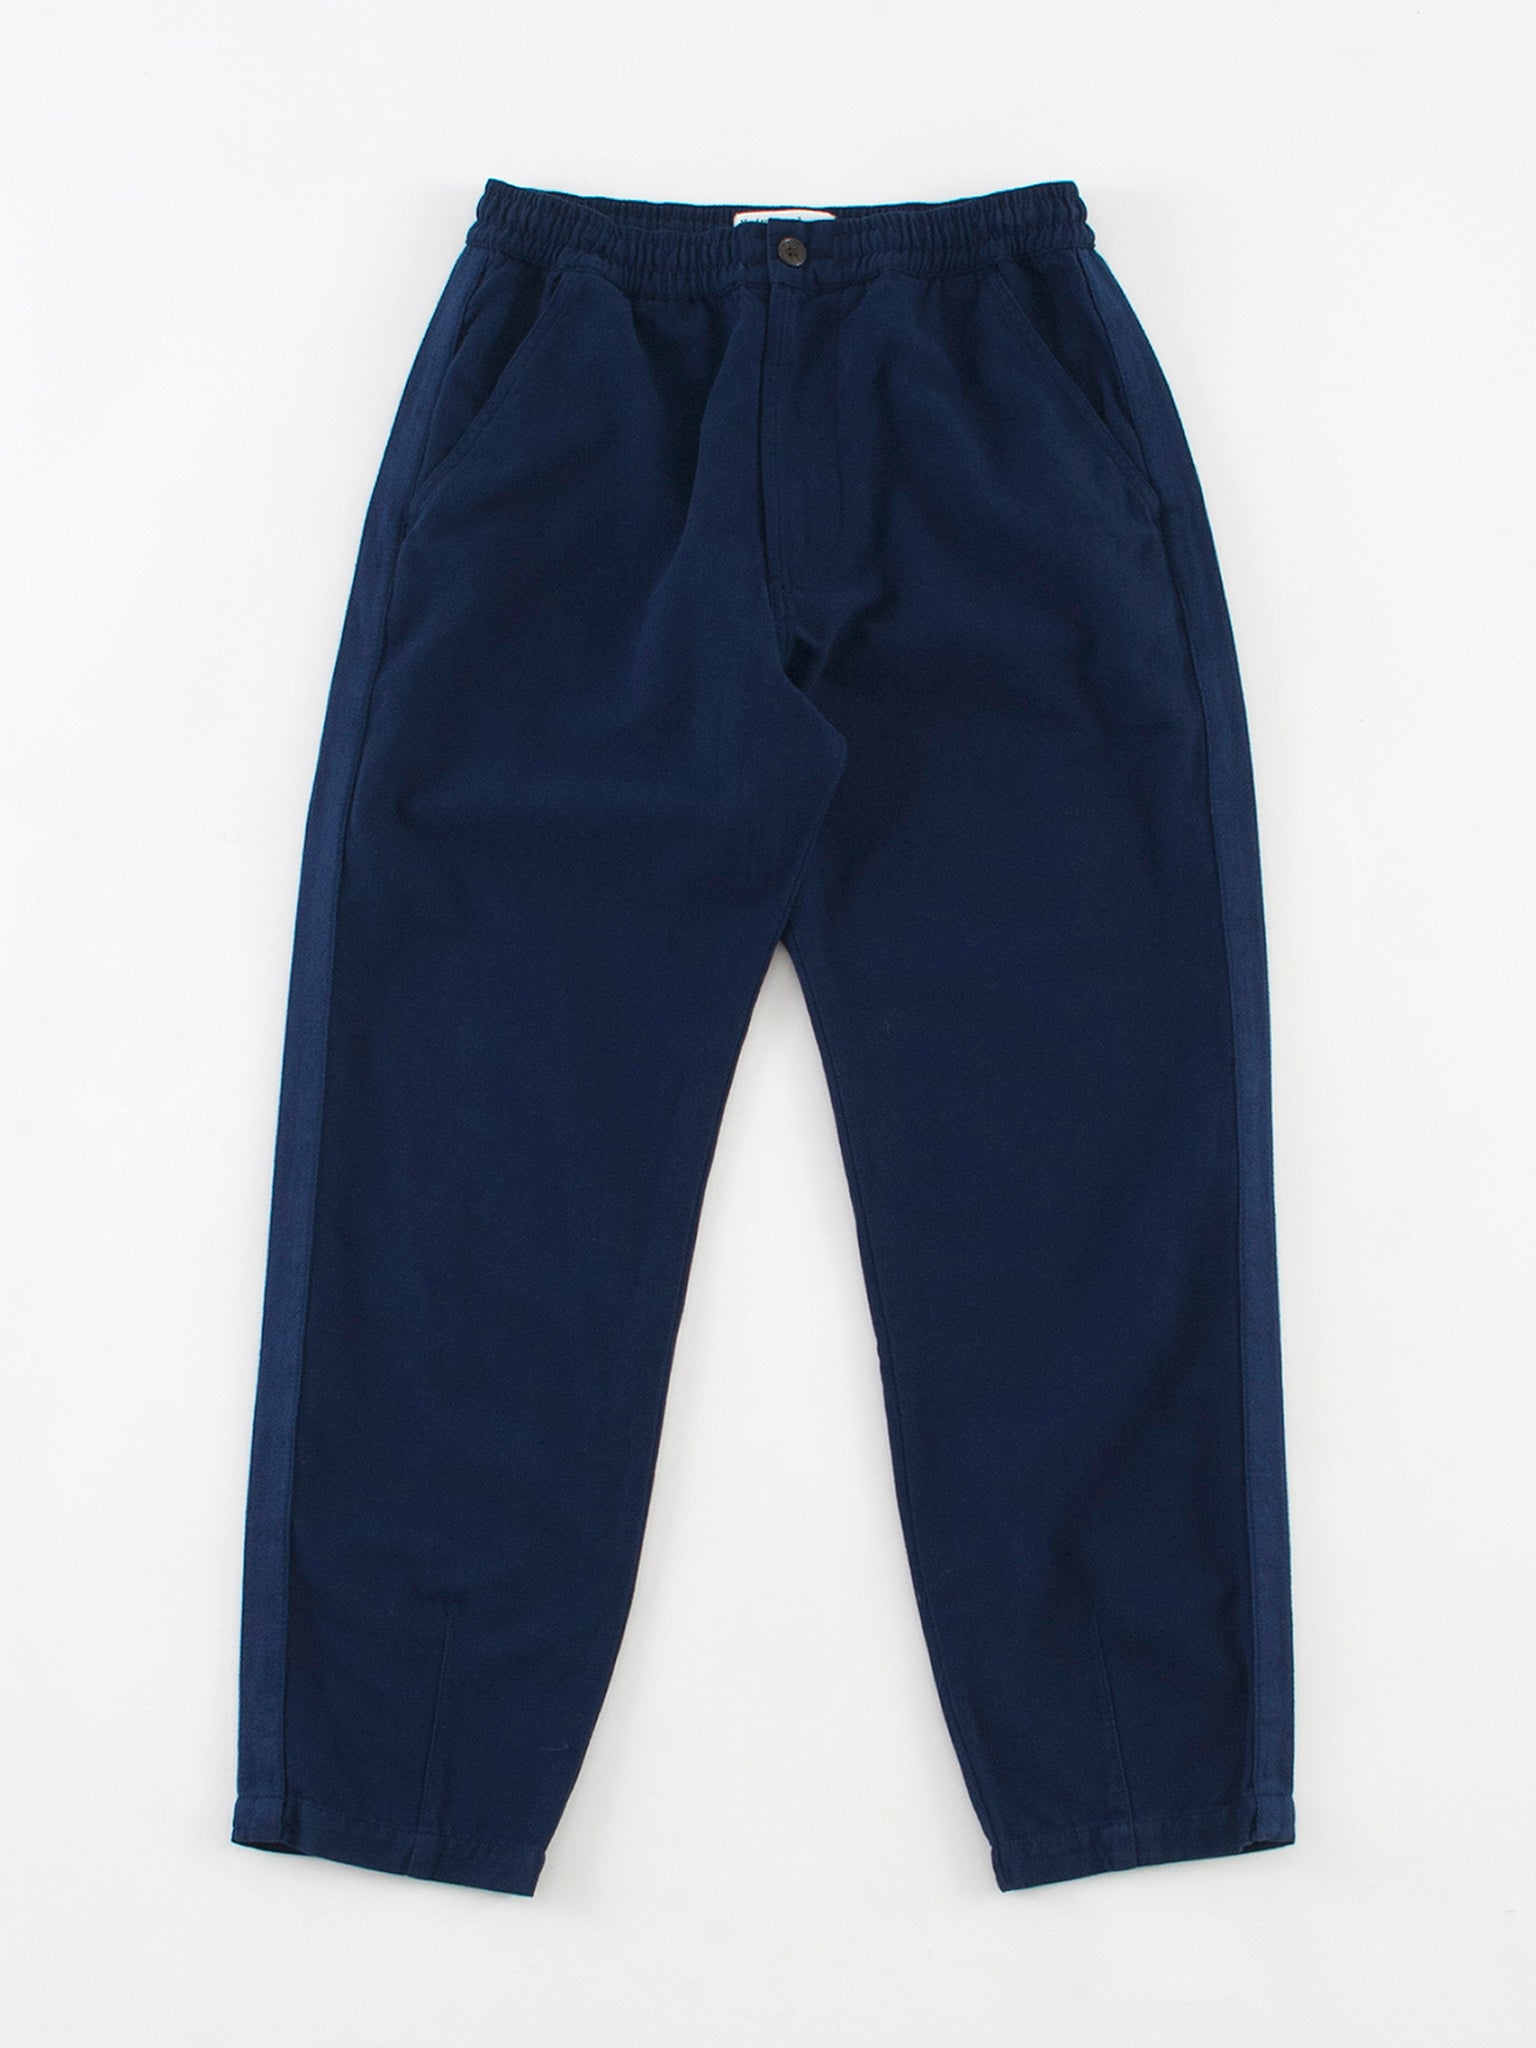 Track trouser, canvas navy